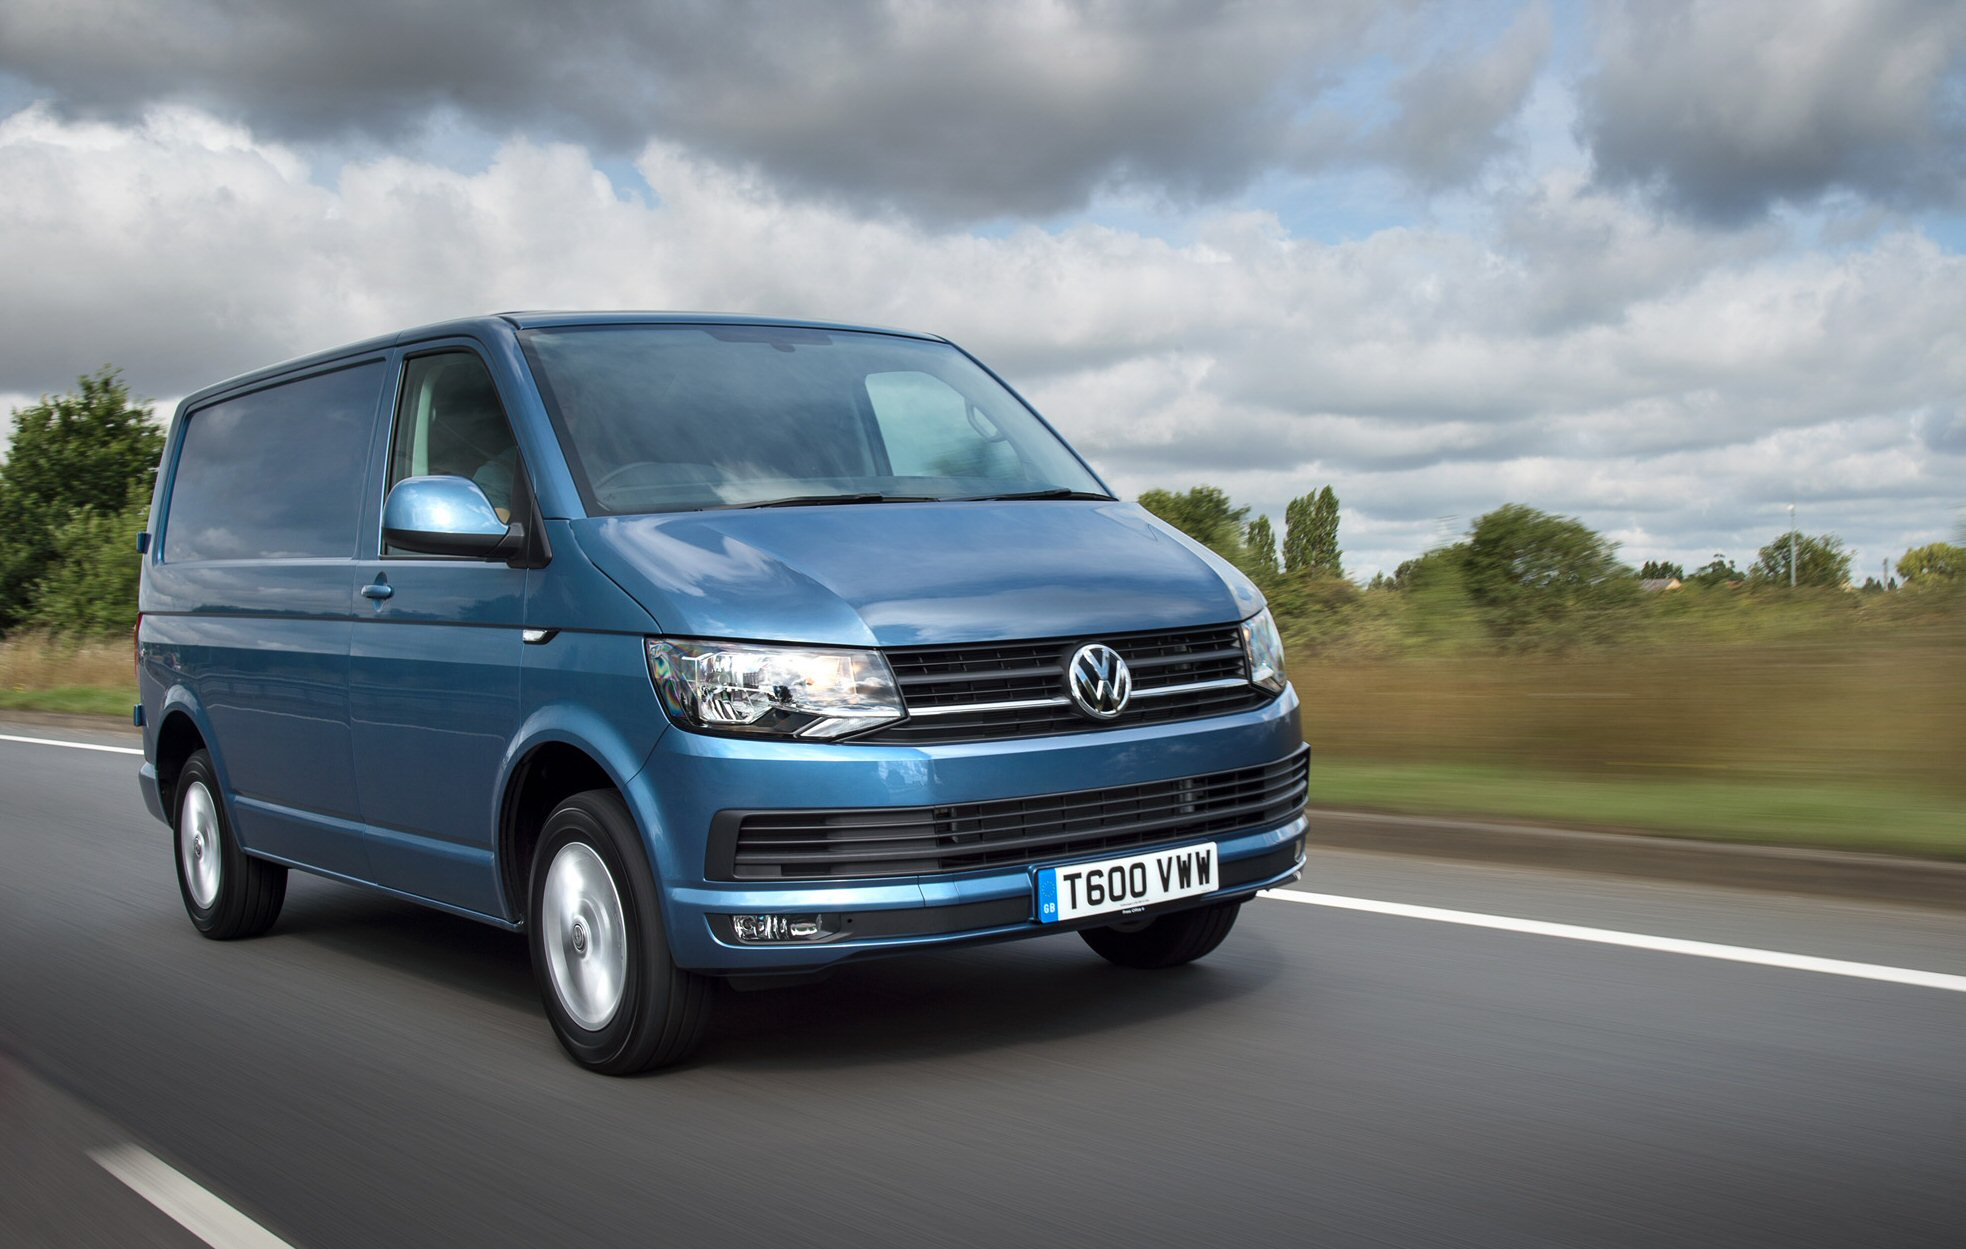 Volkswagen-Transporter-van-best-medium-van-of-the-year